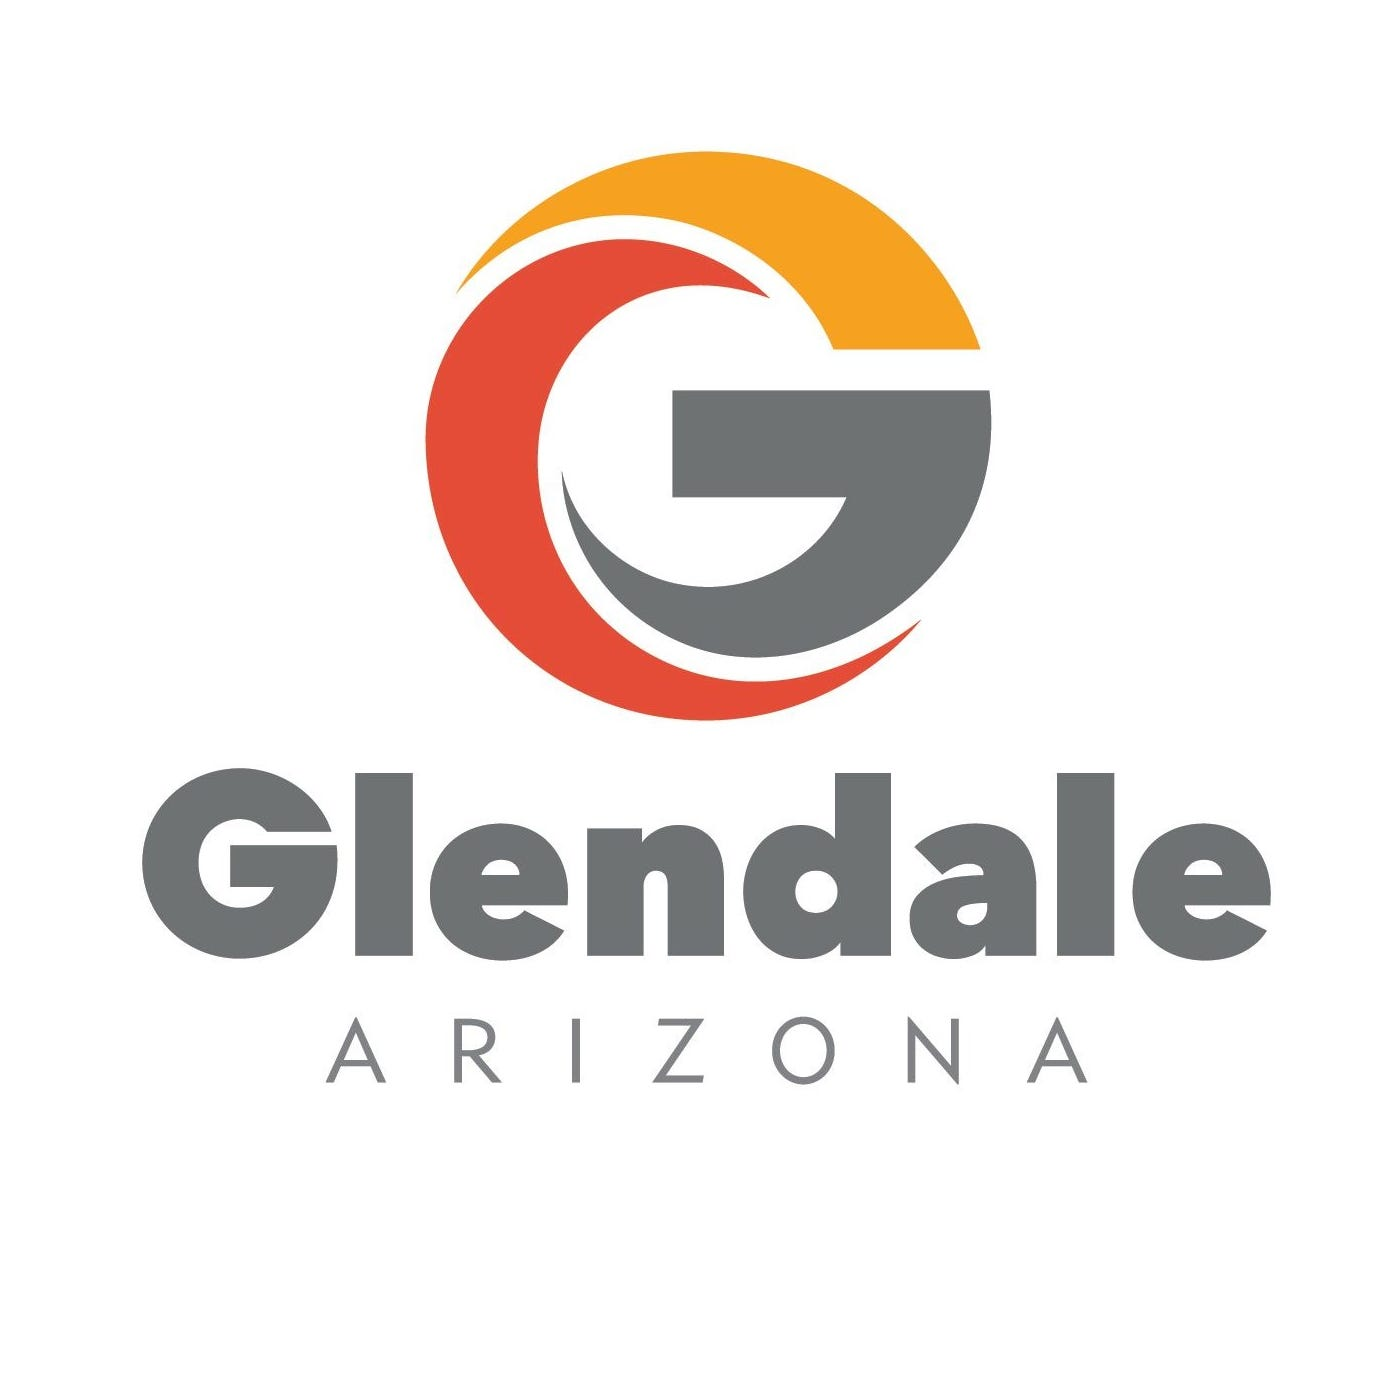 Glendale's new logo looks like the Google icon. Here's why the council's not happy